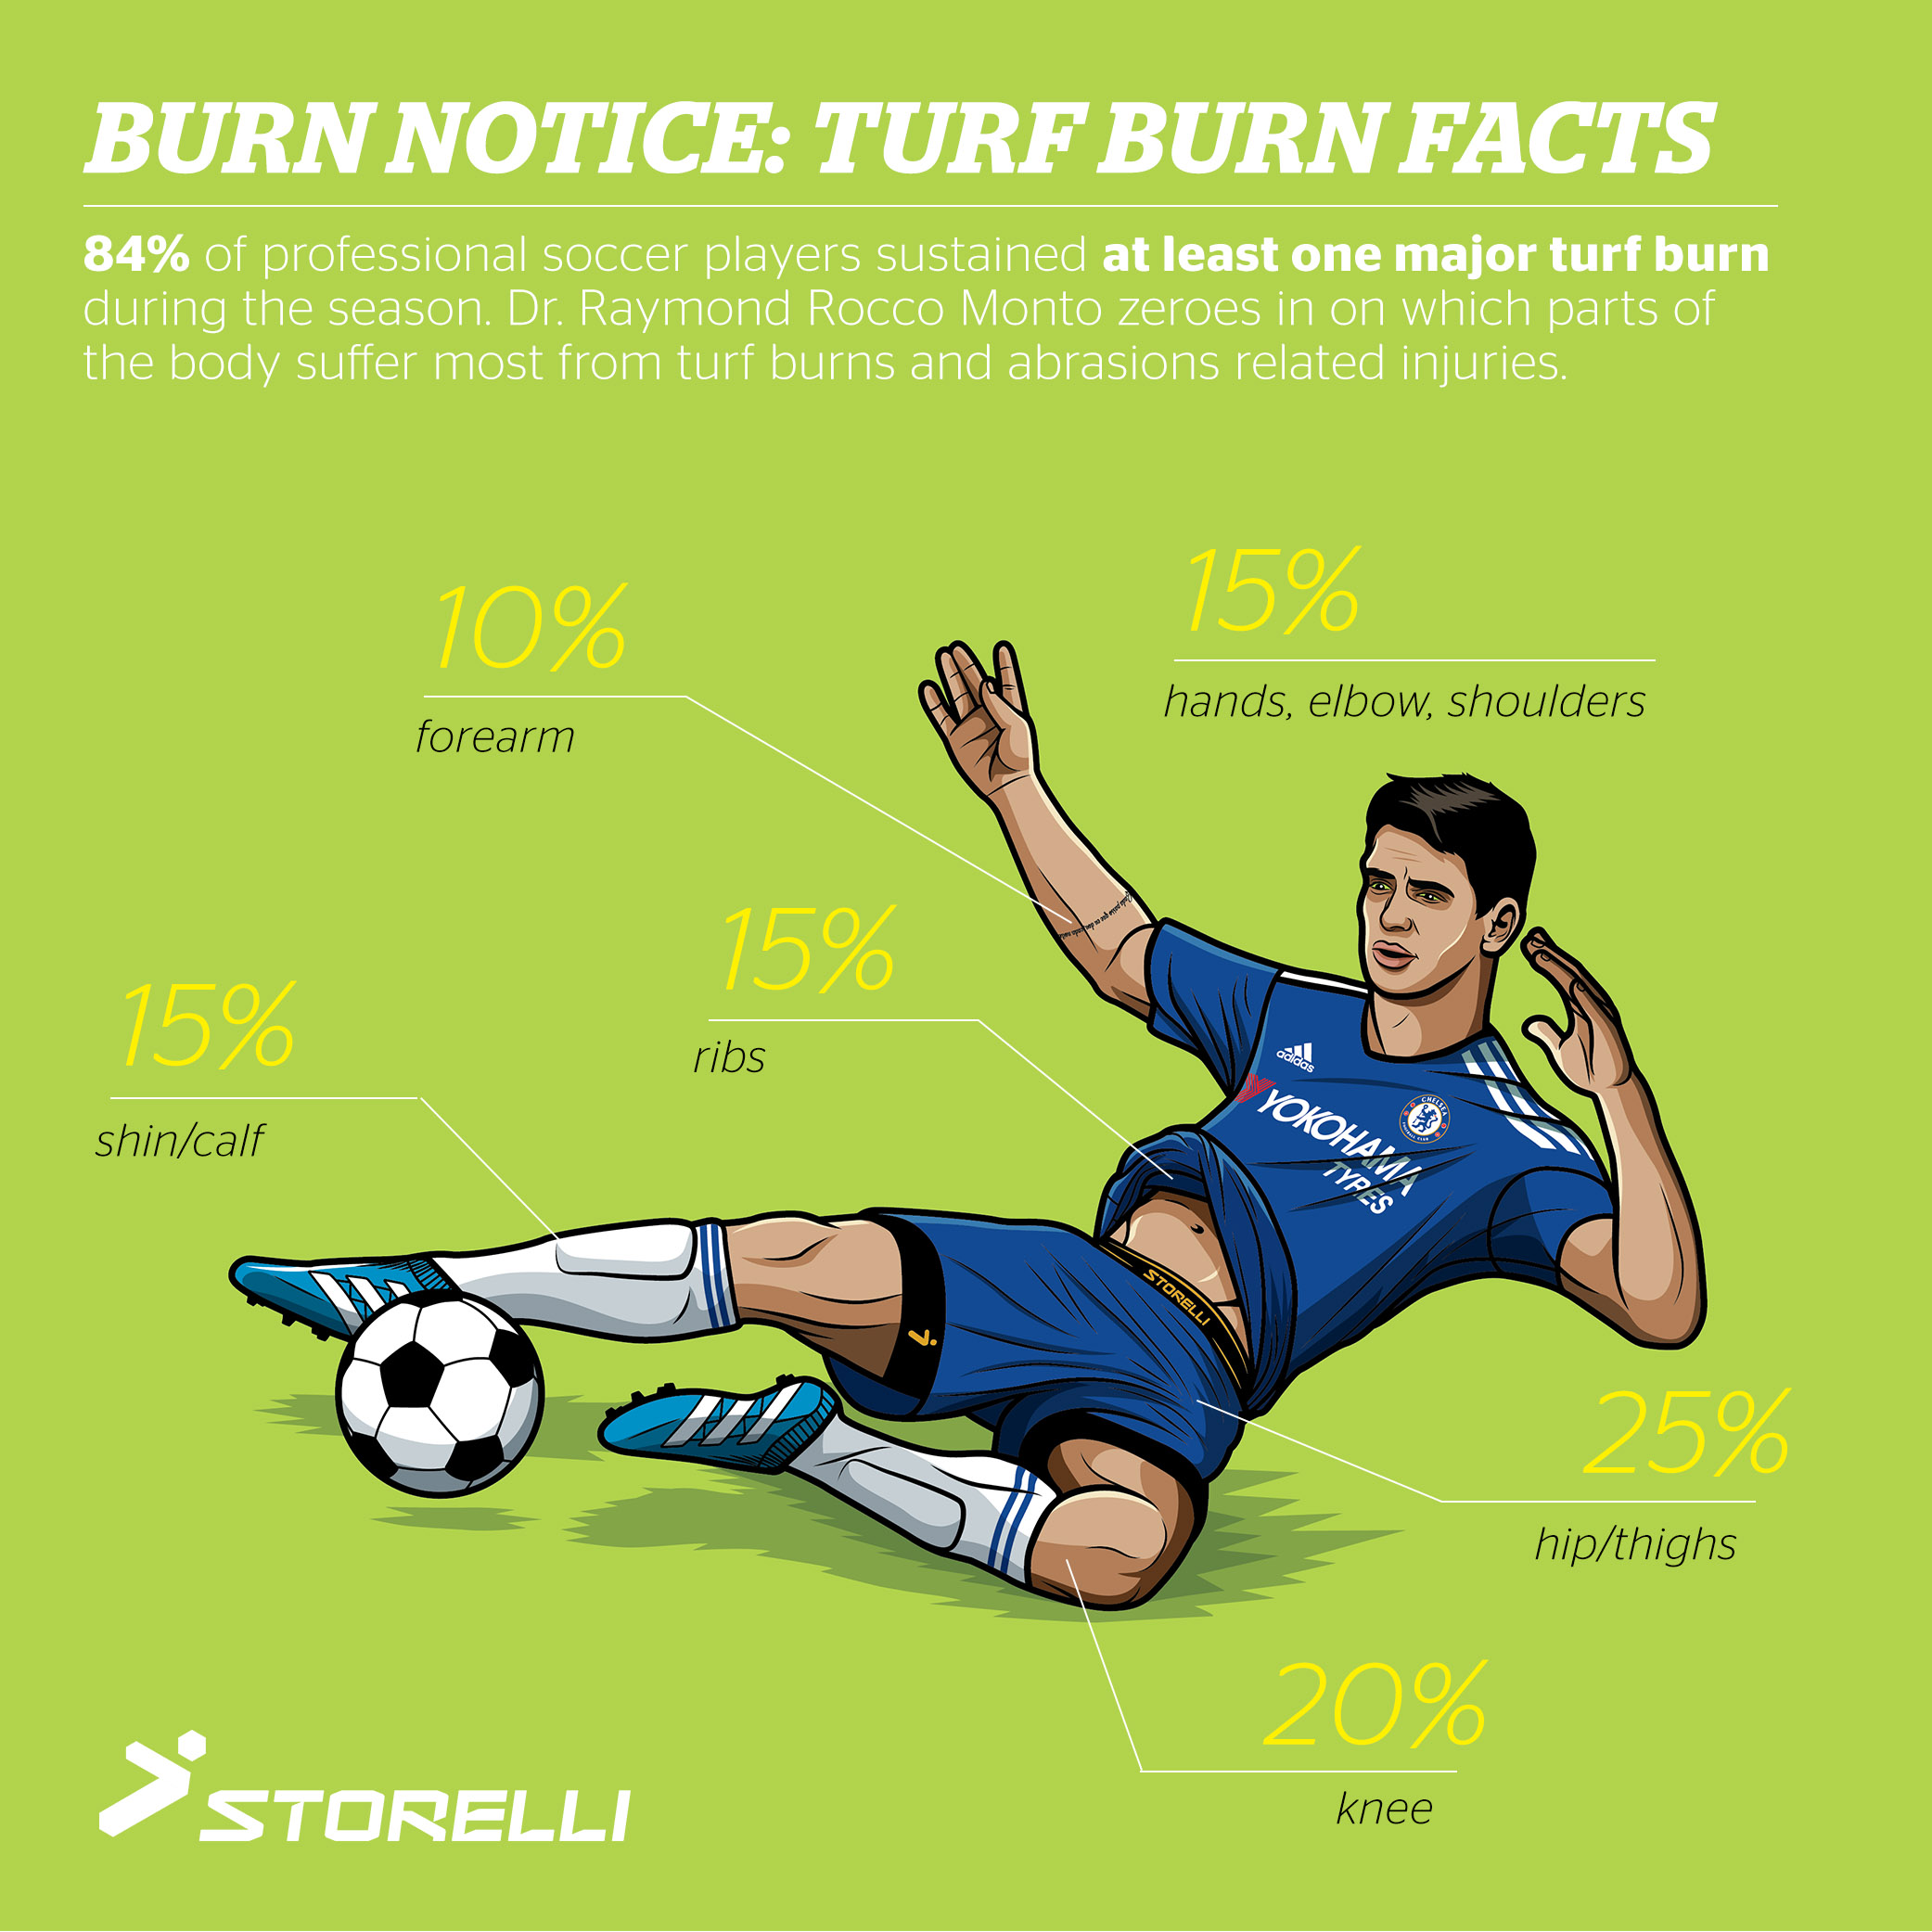 Turf burns absoutely suck. Welcome to the Burn Cycle: Part 2.